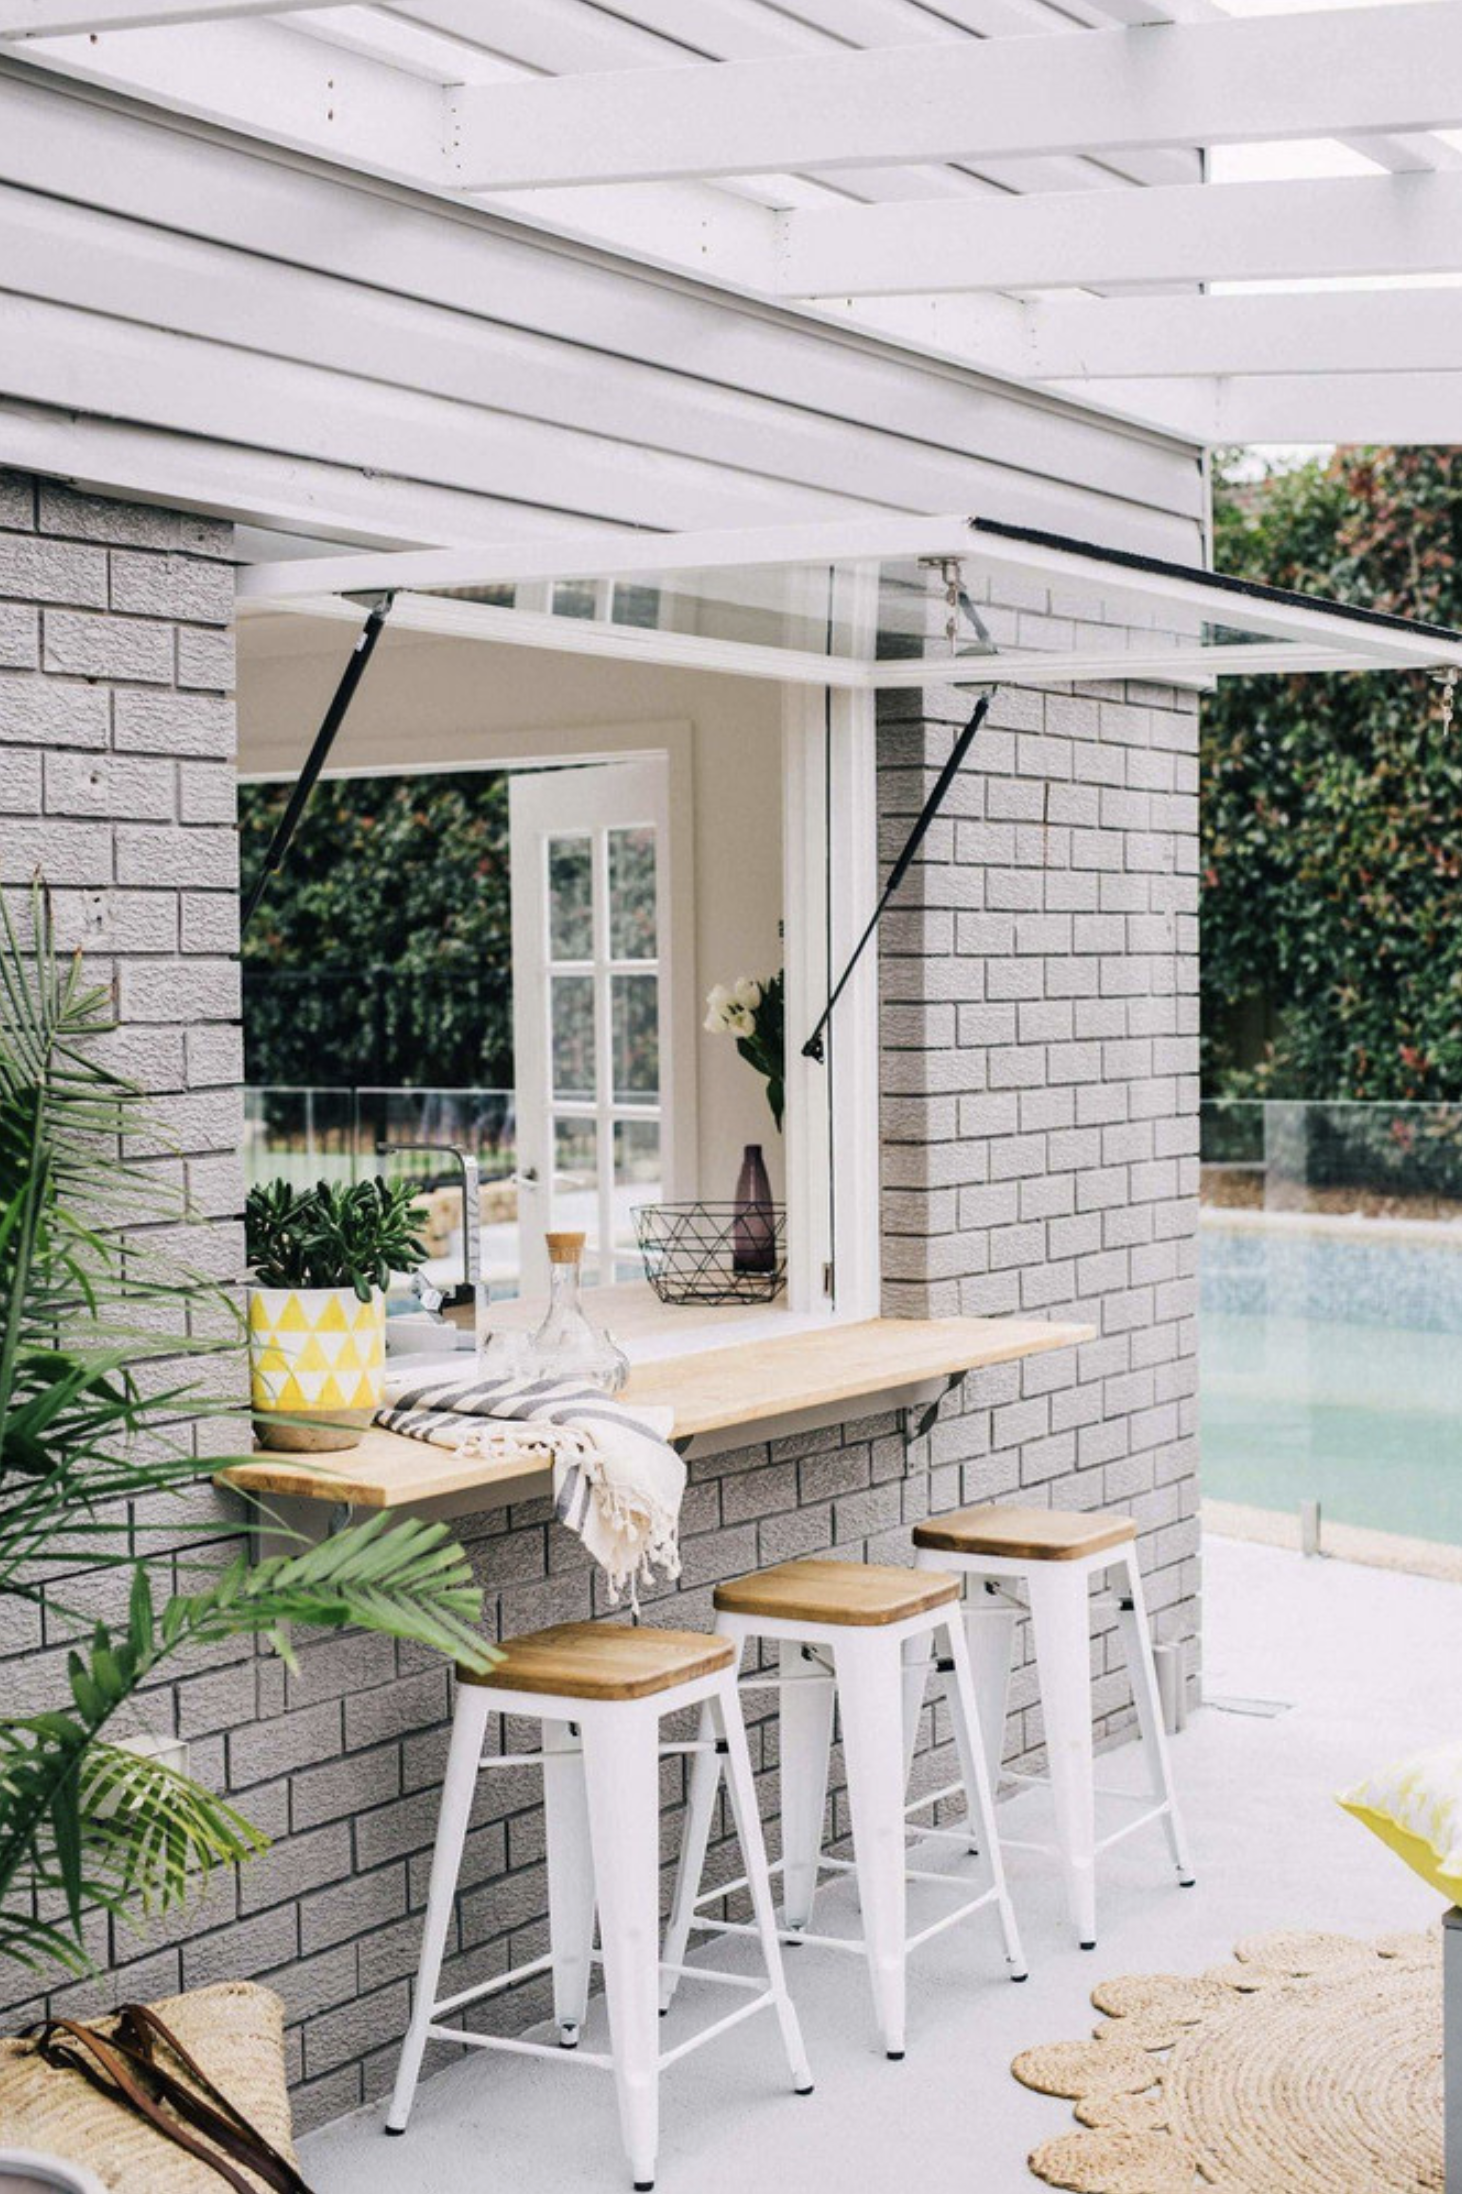 Photo of Inspiring Outdoor Spaces + Our Favorite Sale Picks – The Identité Collective